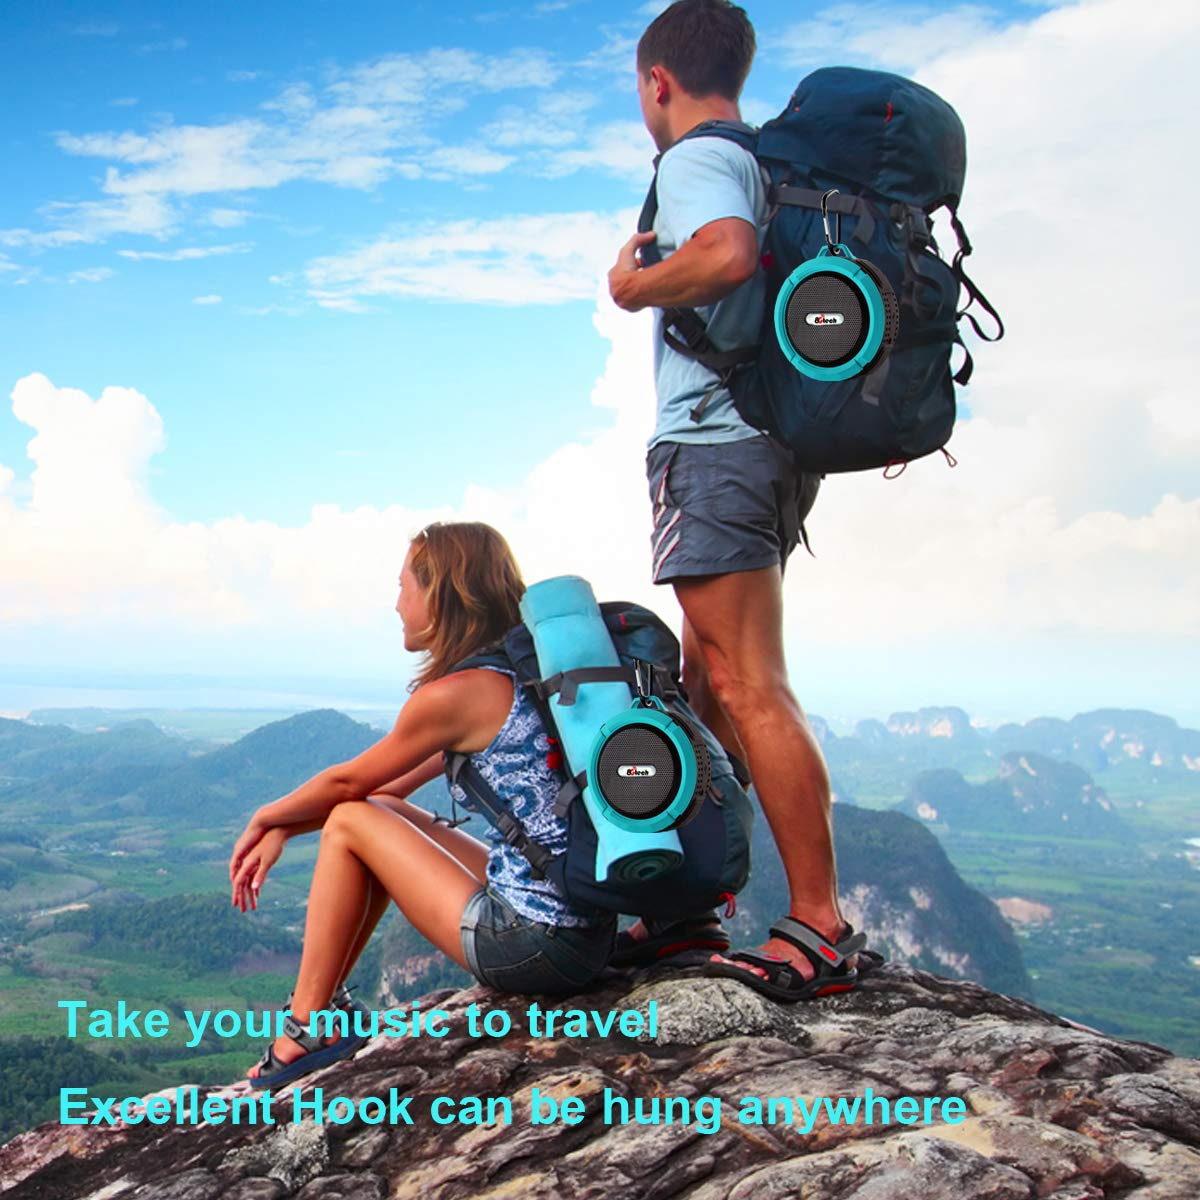 Shower Speaker Built-in Mic Hiking Biking 5W Big Sound Pool 8Gtech IPX5 Waterproof Bluetooth Speaker with 6H Playtime Suit for Bathroom Portable Speaker with Suction Cup /& Sturdy Hook